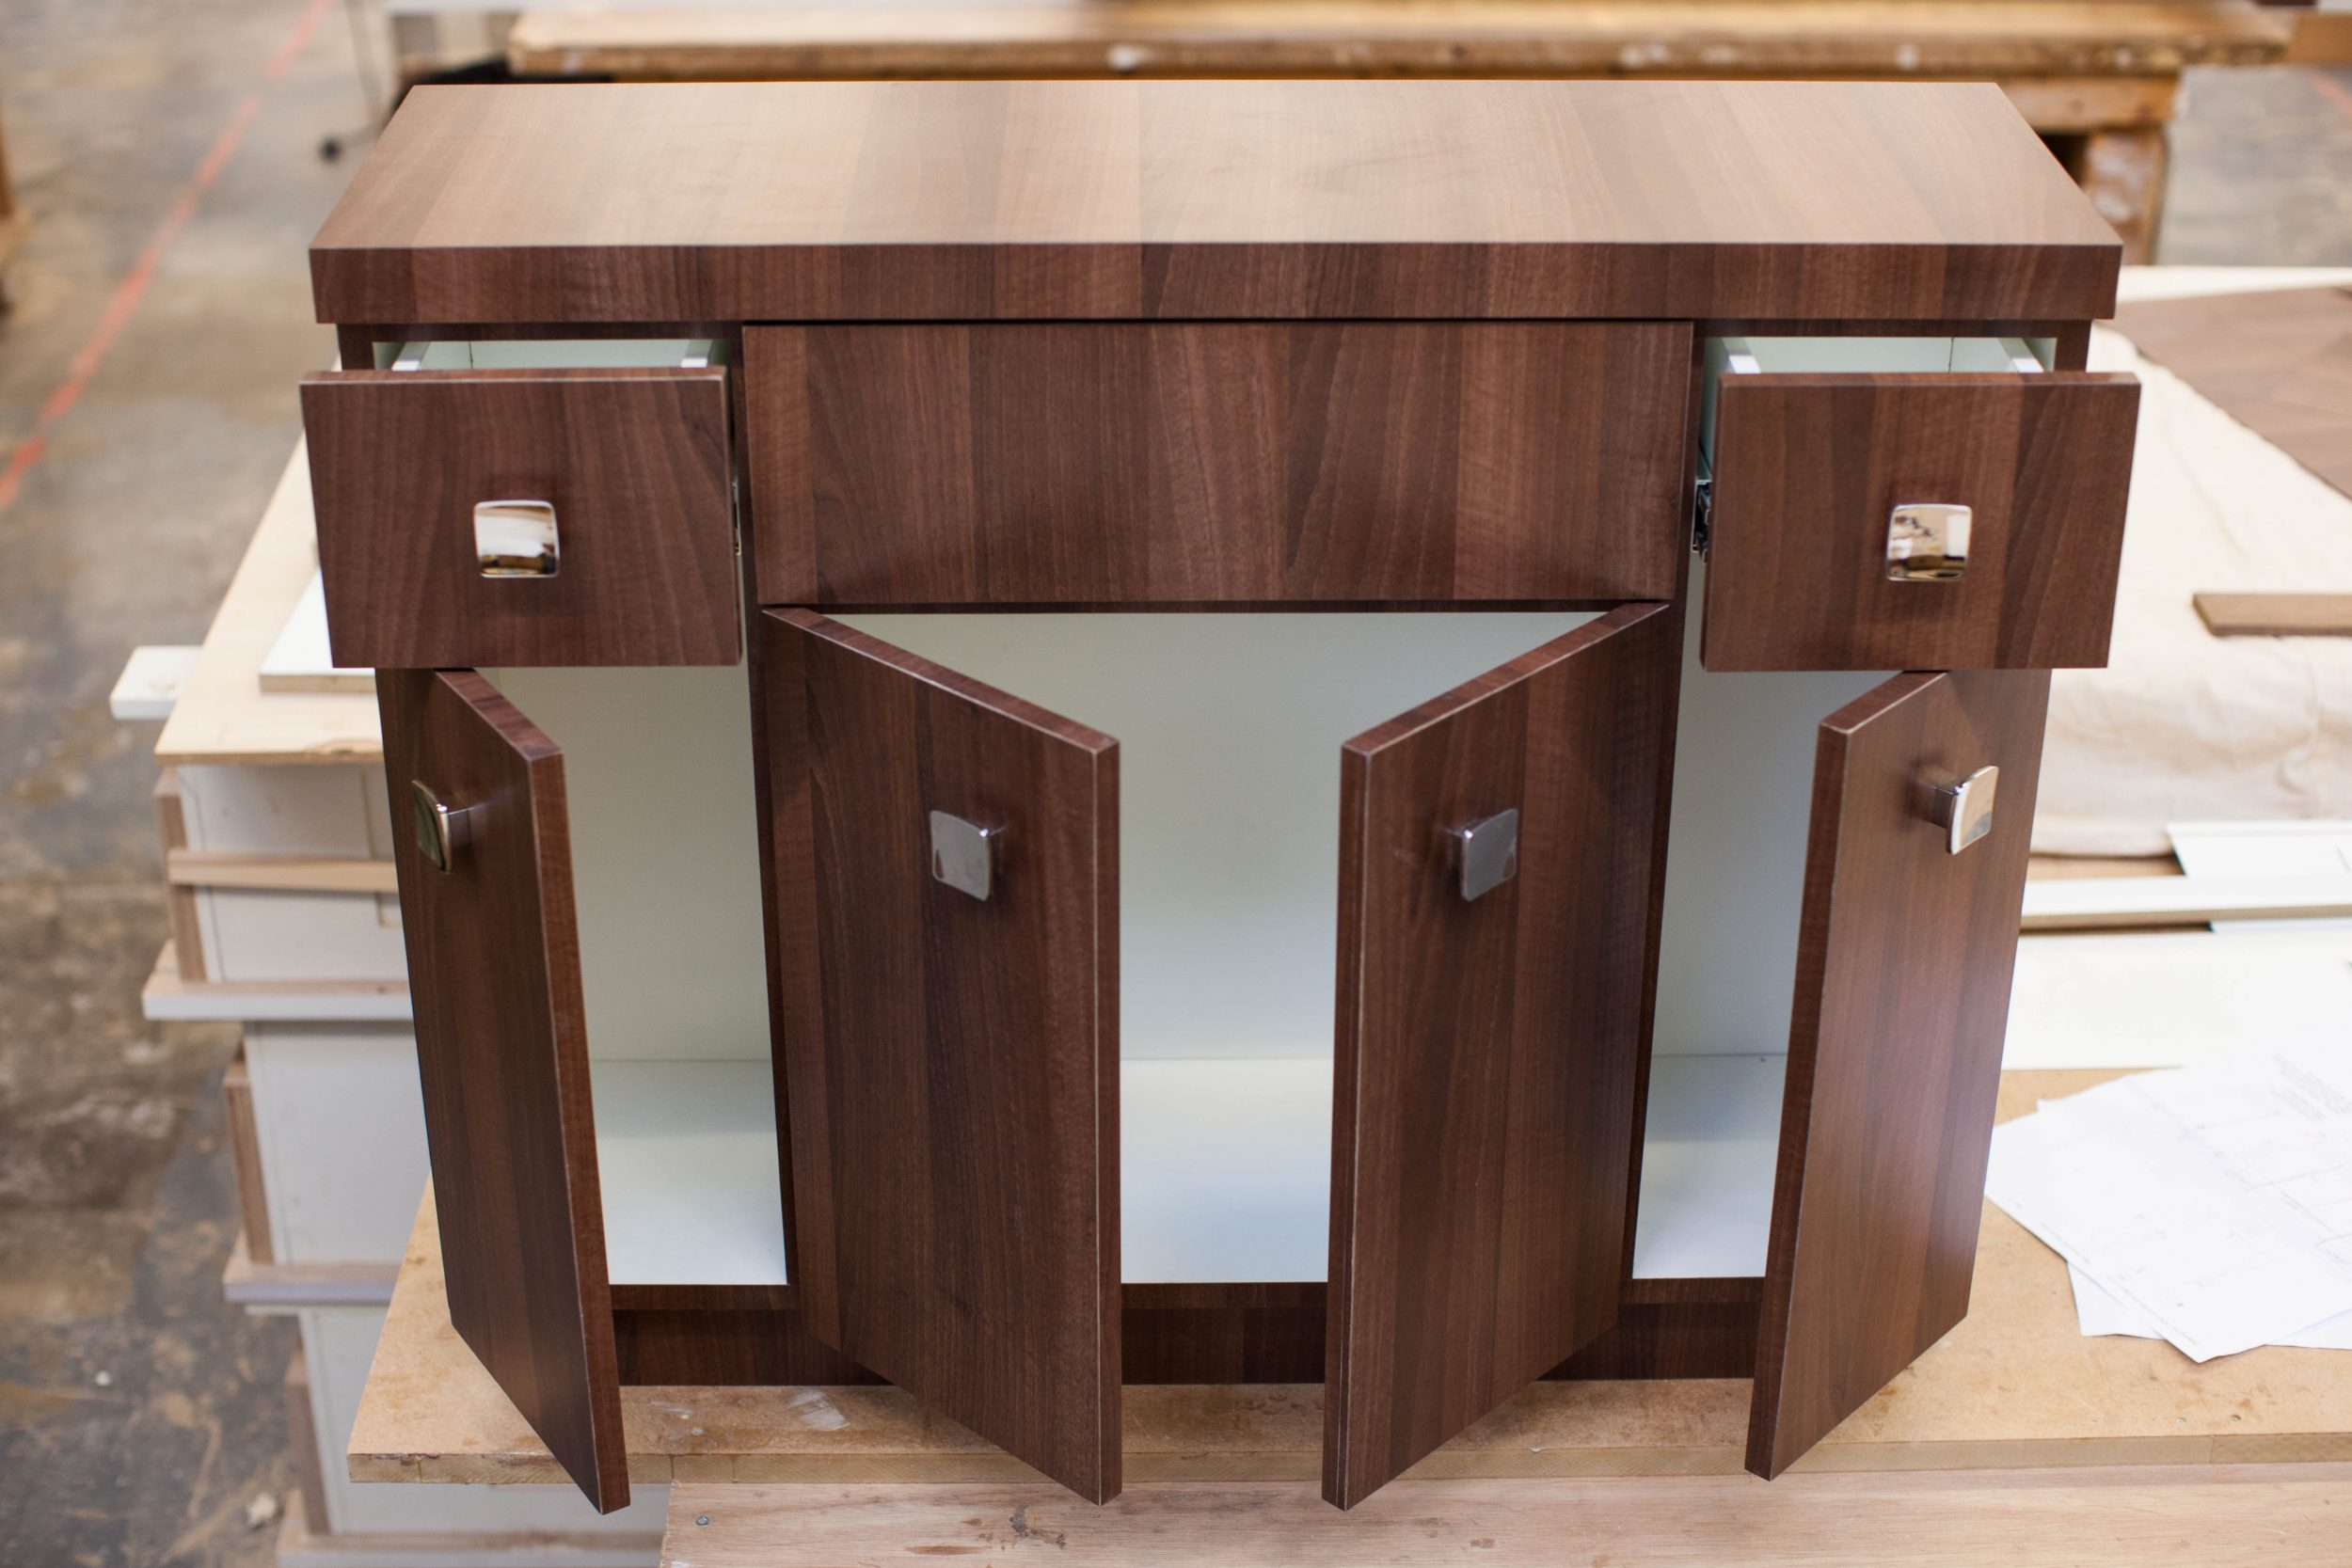 Kandd Cabinetry